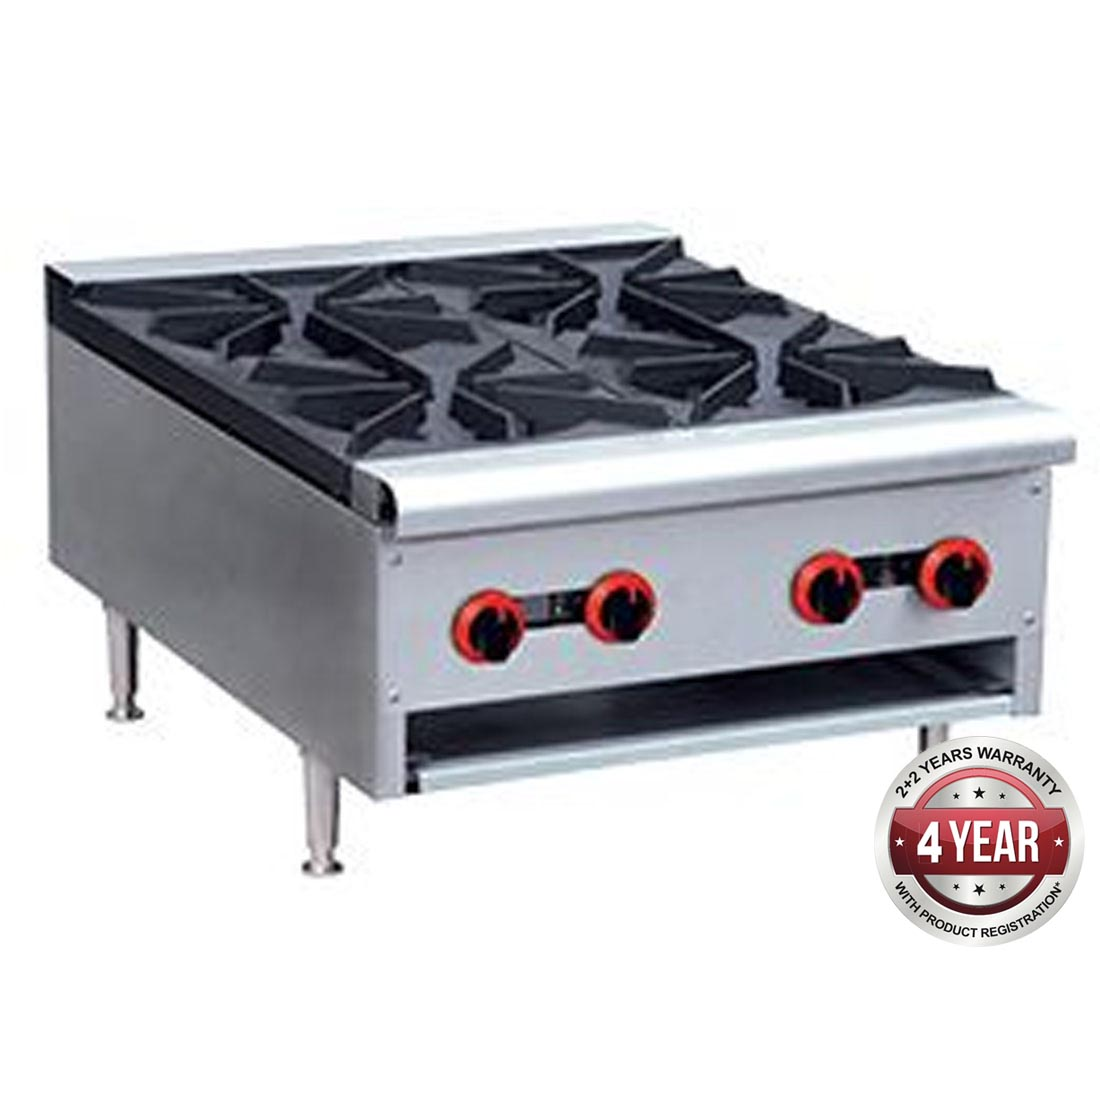 Gas Cook top 4 burner with Flame Failure - RB-4ELPG